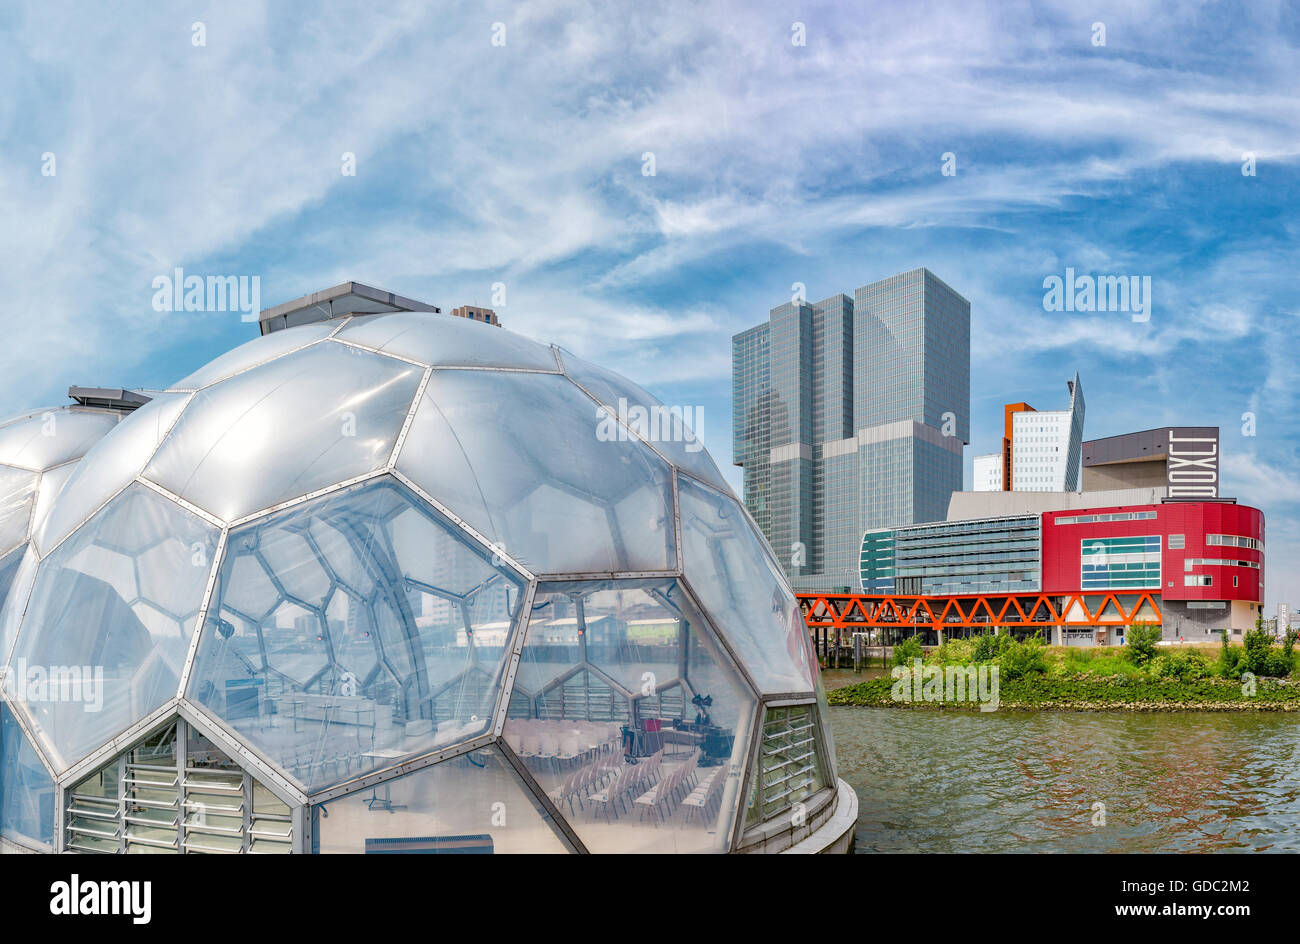 Rotterdam,Modern high-rise office buildings and the Floating Pavilion - Stock Image